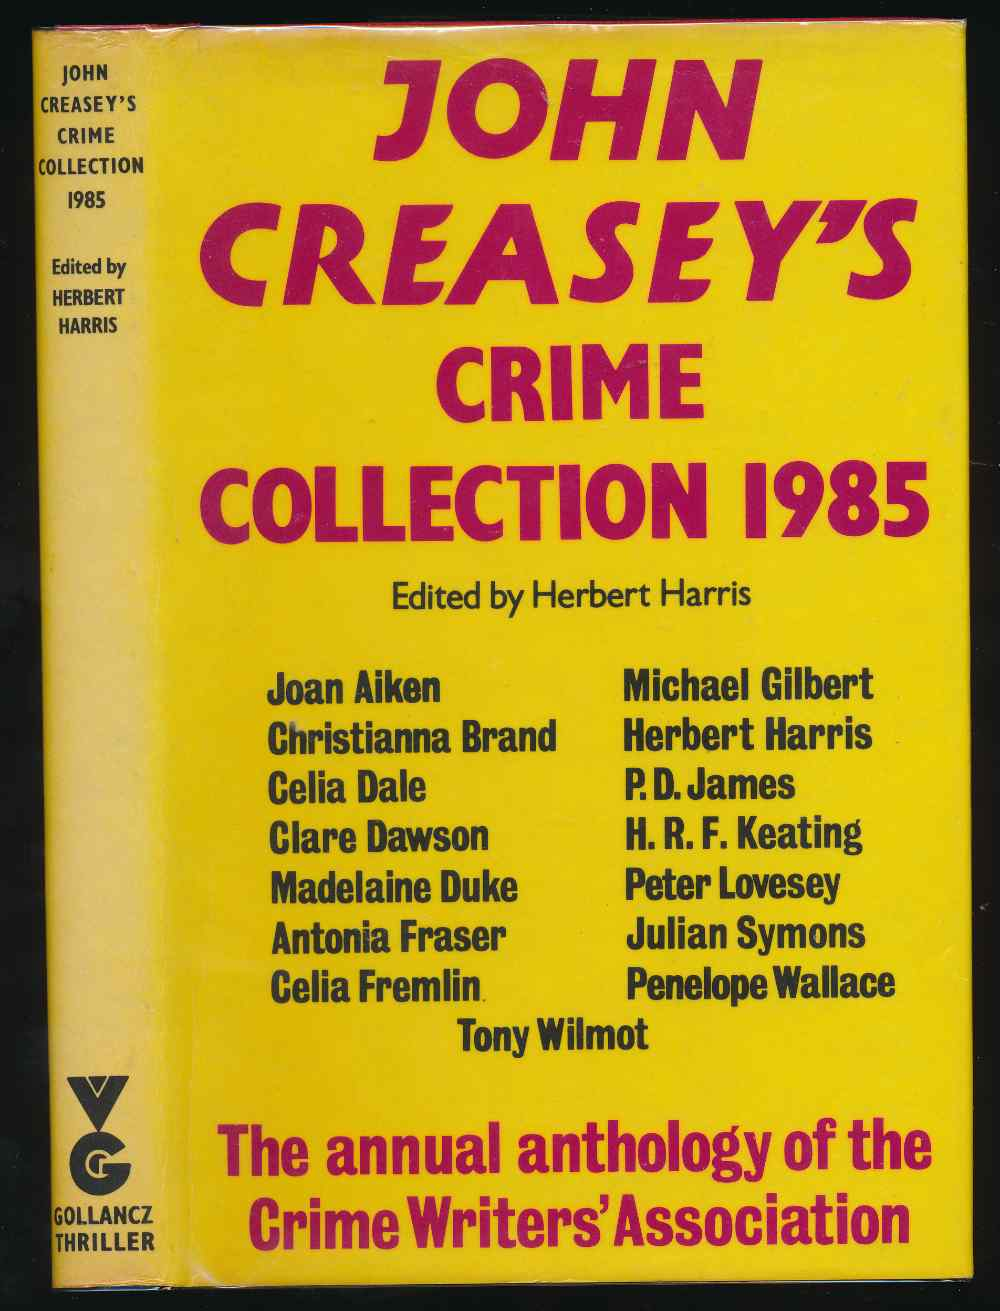 John Creasey's crime collection 1985 : an anthology by members of the Crime Writers' Association